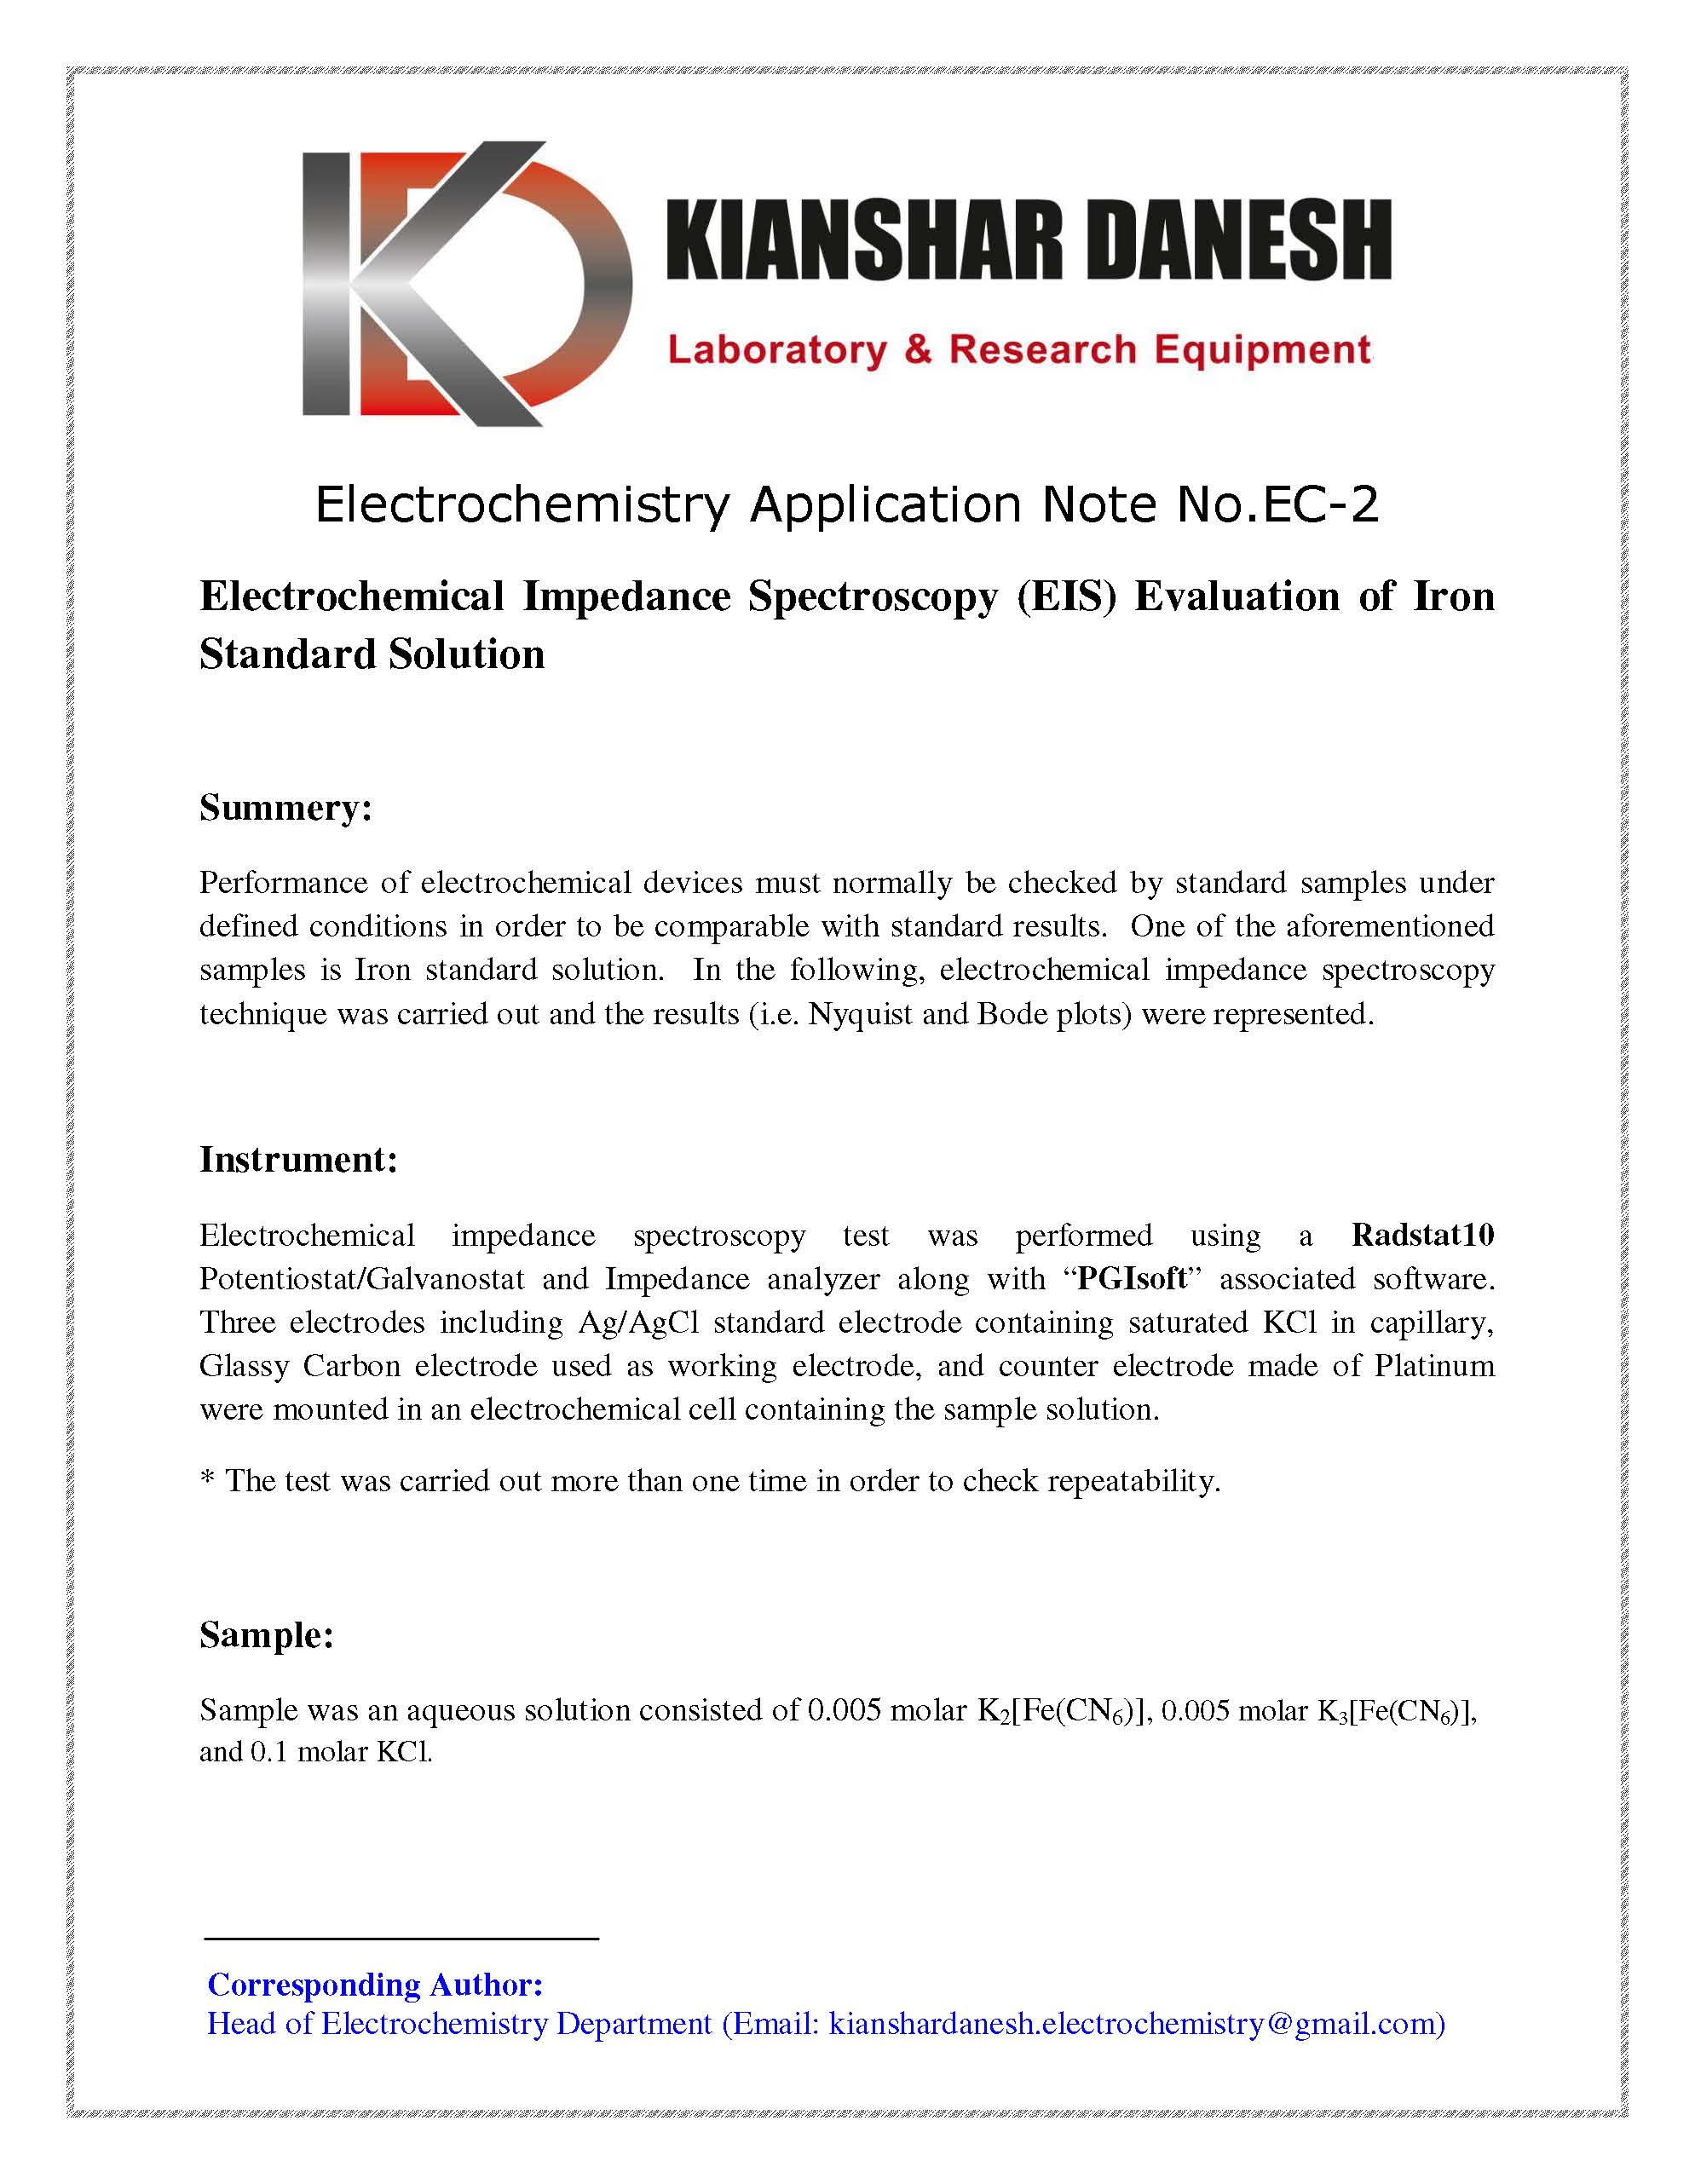 Electrochemical Impedance Spectroscopy (EIS) Evaluation of Iron Standard Solution